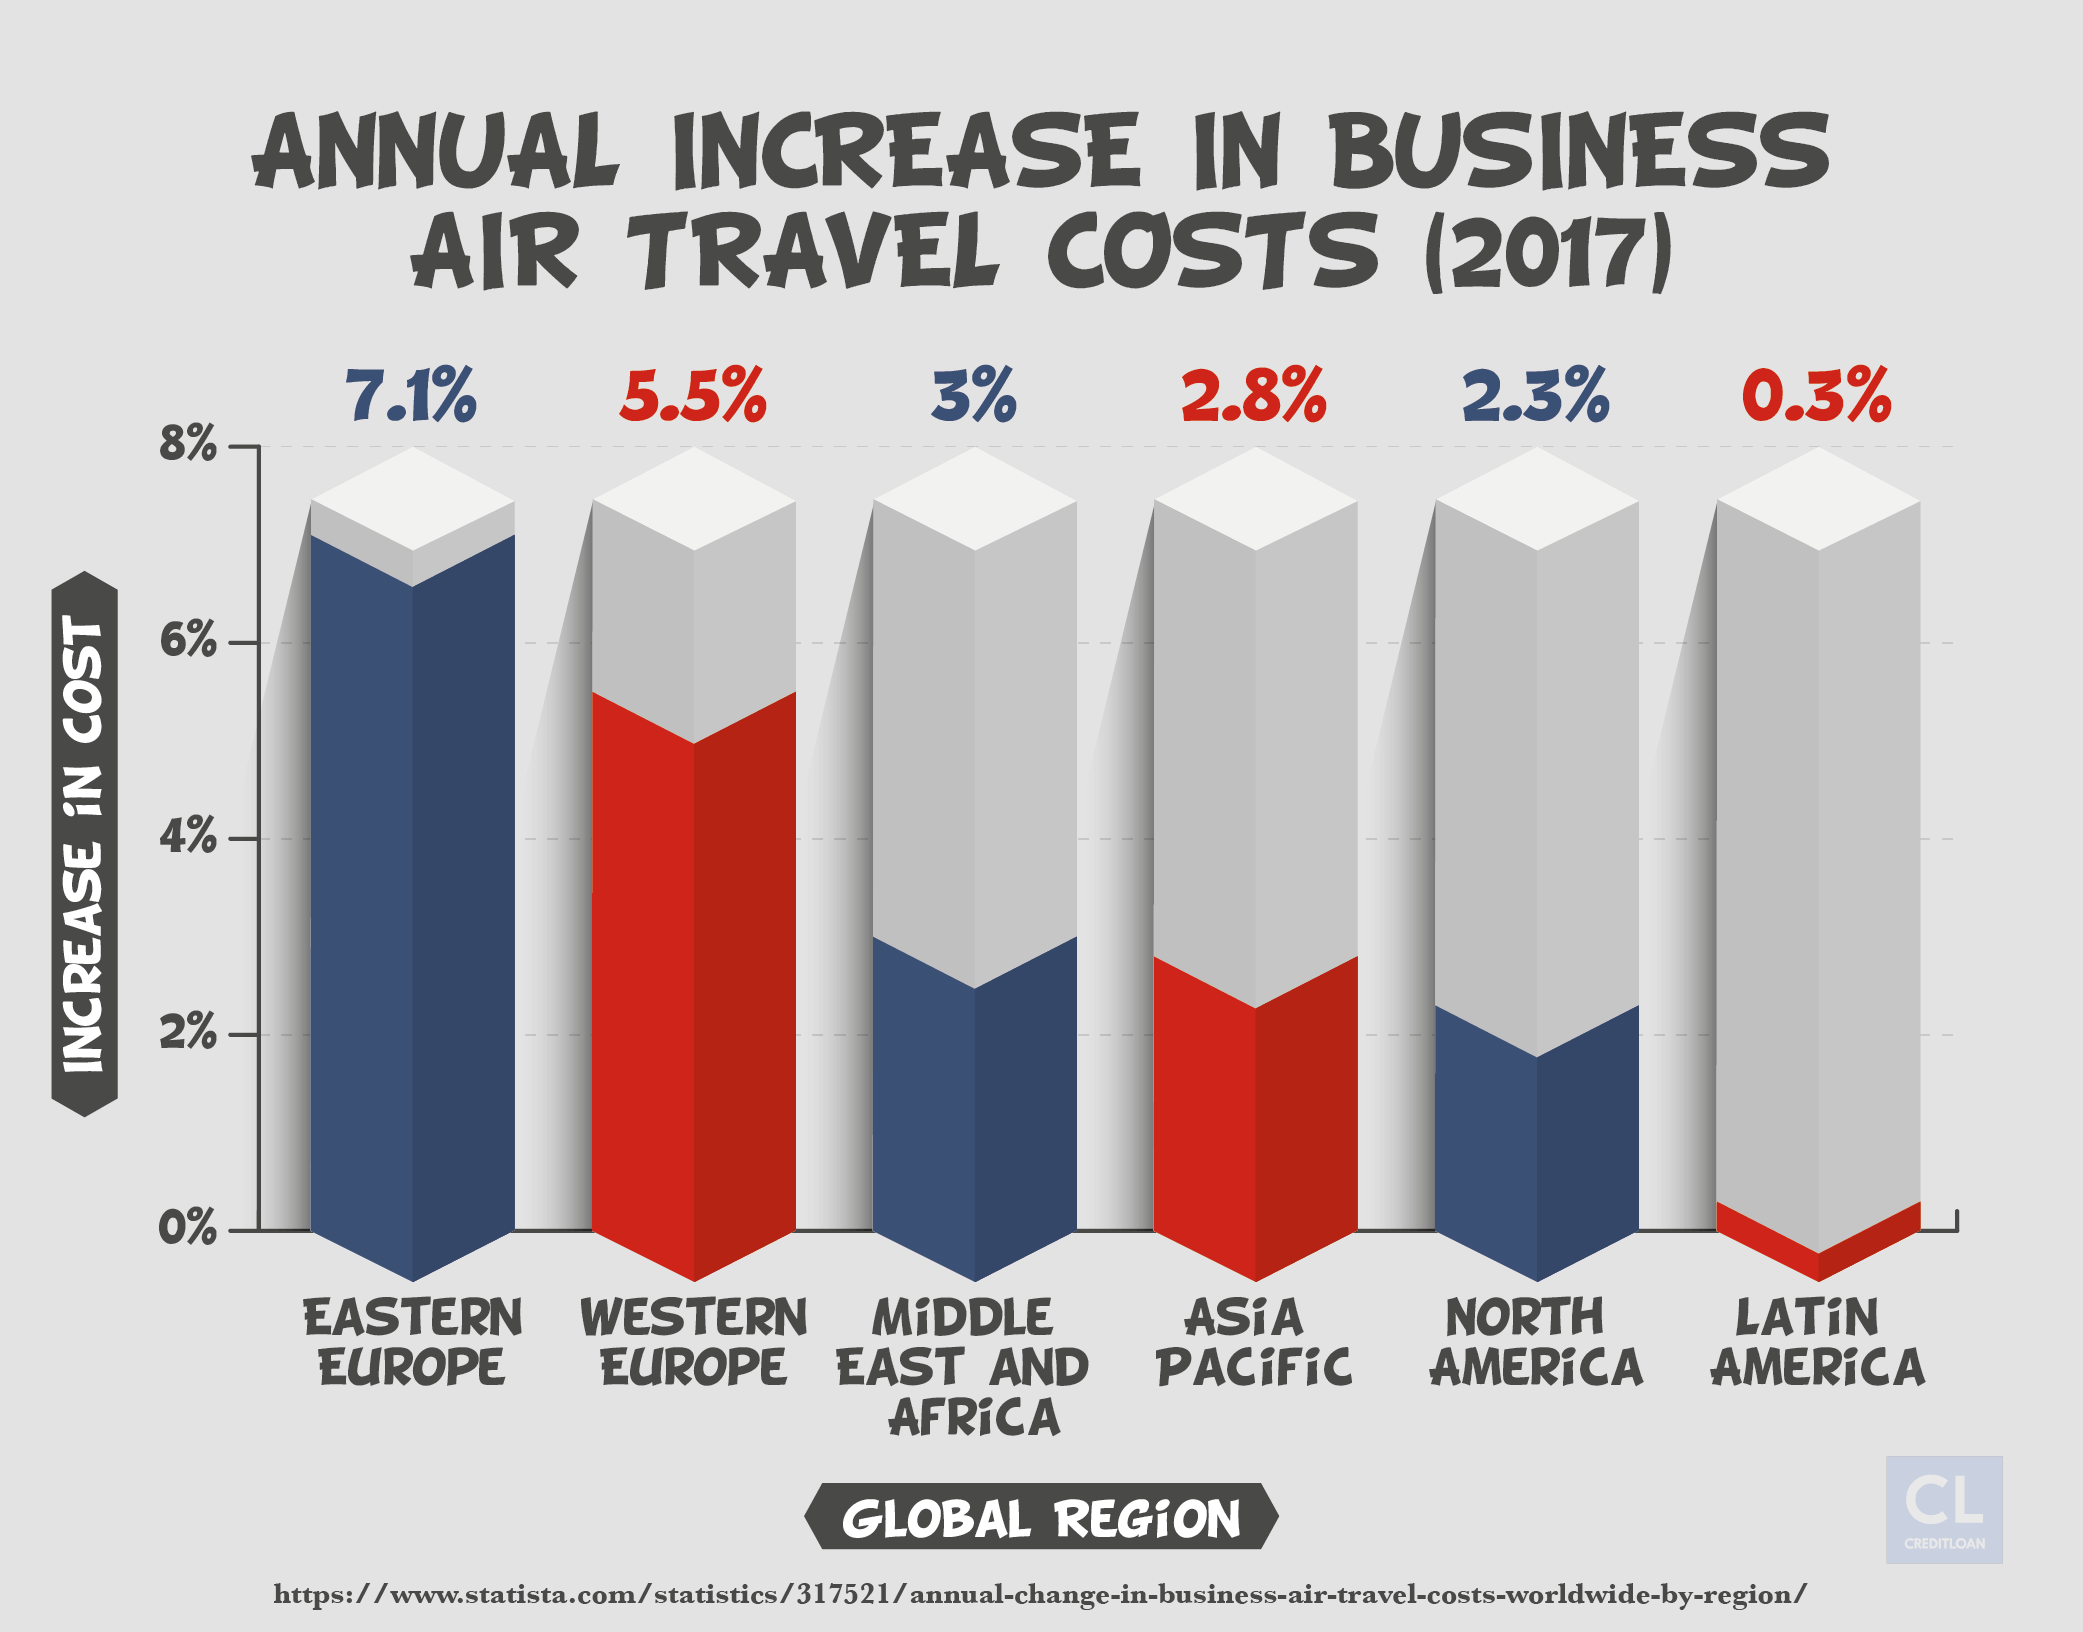 Annual Increase in Business Air Travel Costs in 2017